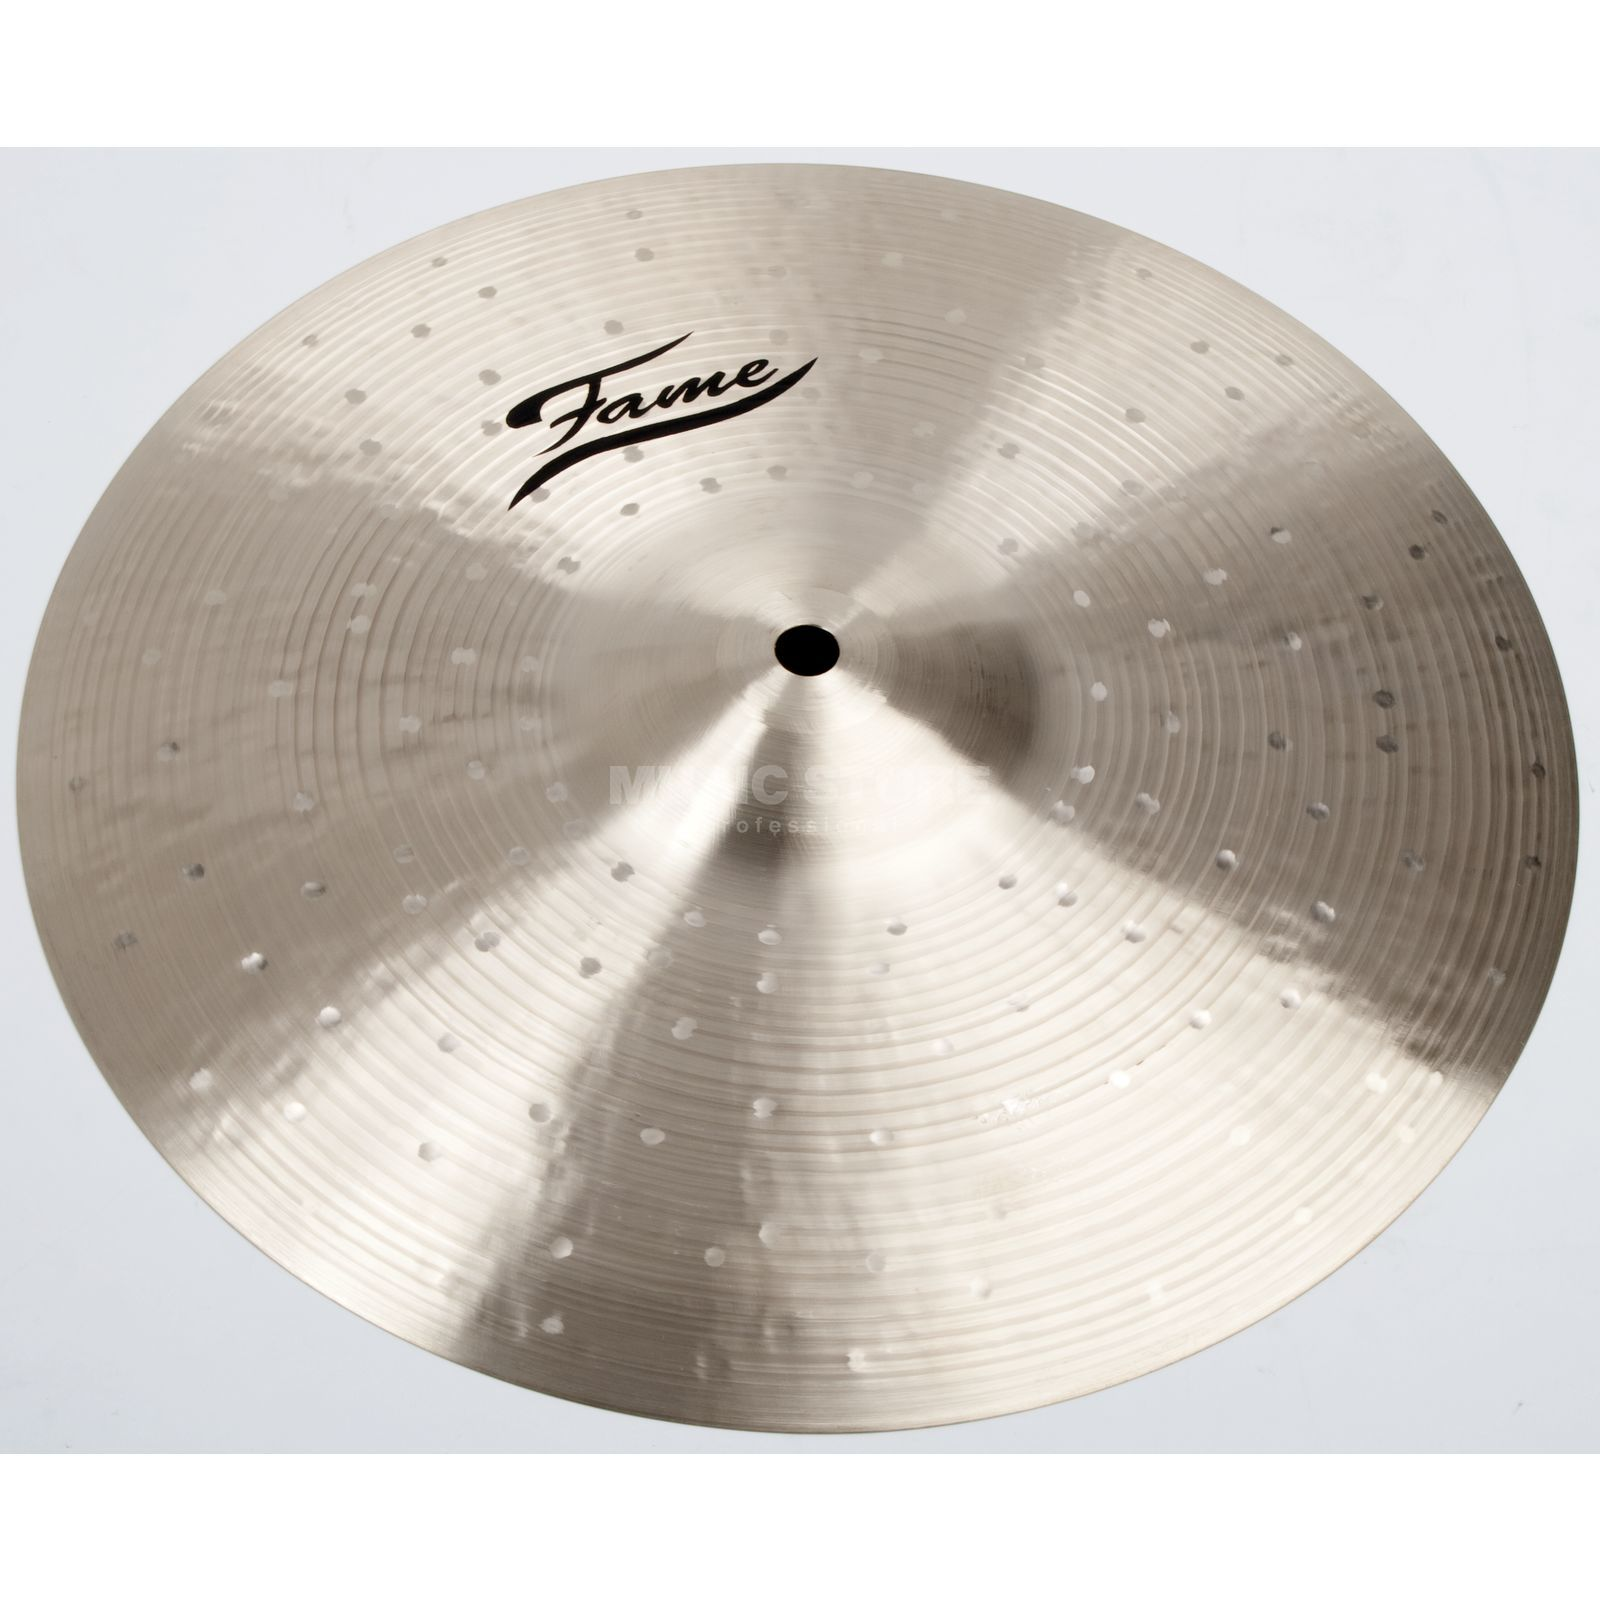 "Fame Masters B20 Splash 12"" Natural Finish Produktbillede"